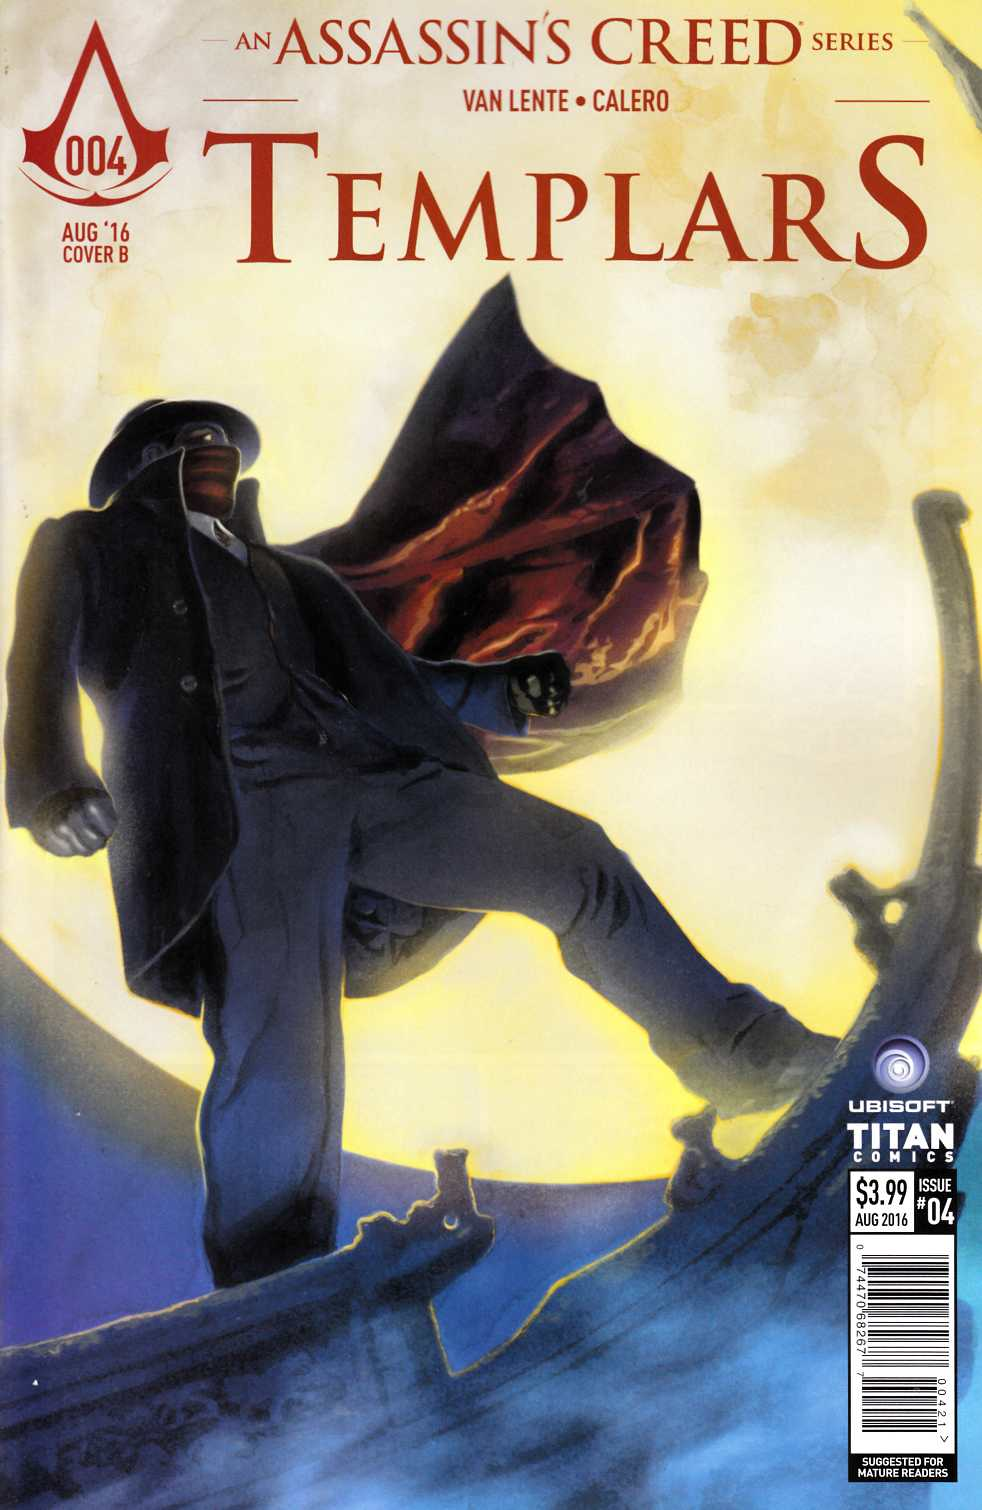 Assassins Creed Templars #4 Cover B [Titan Comic]